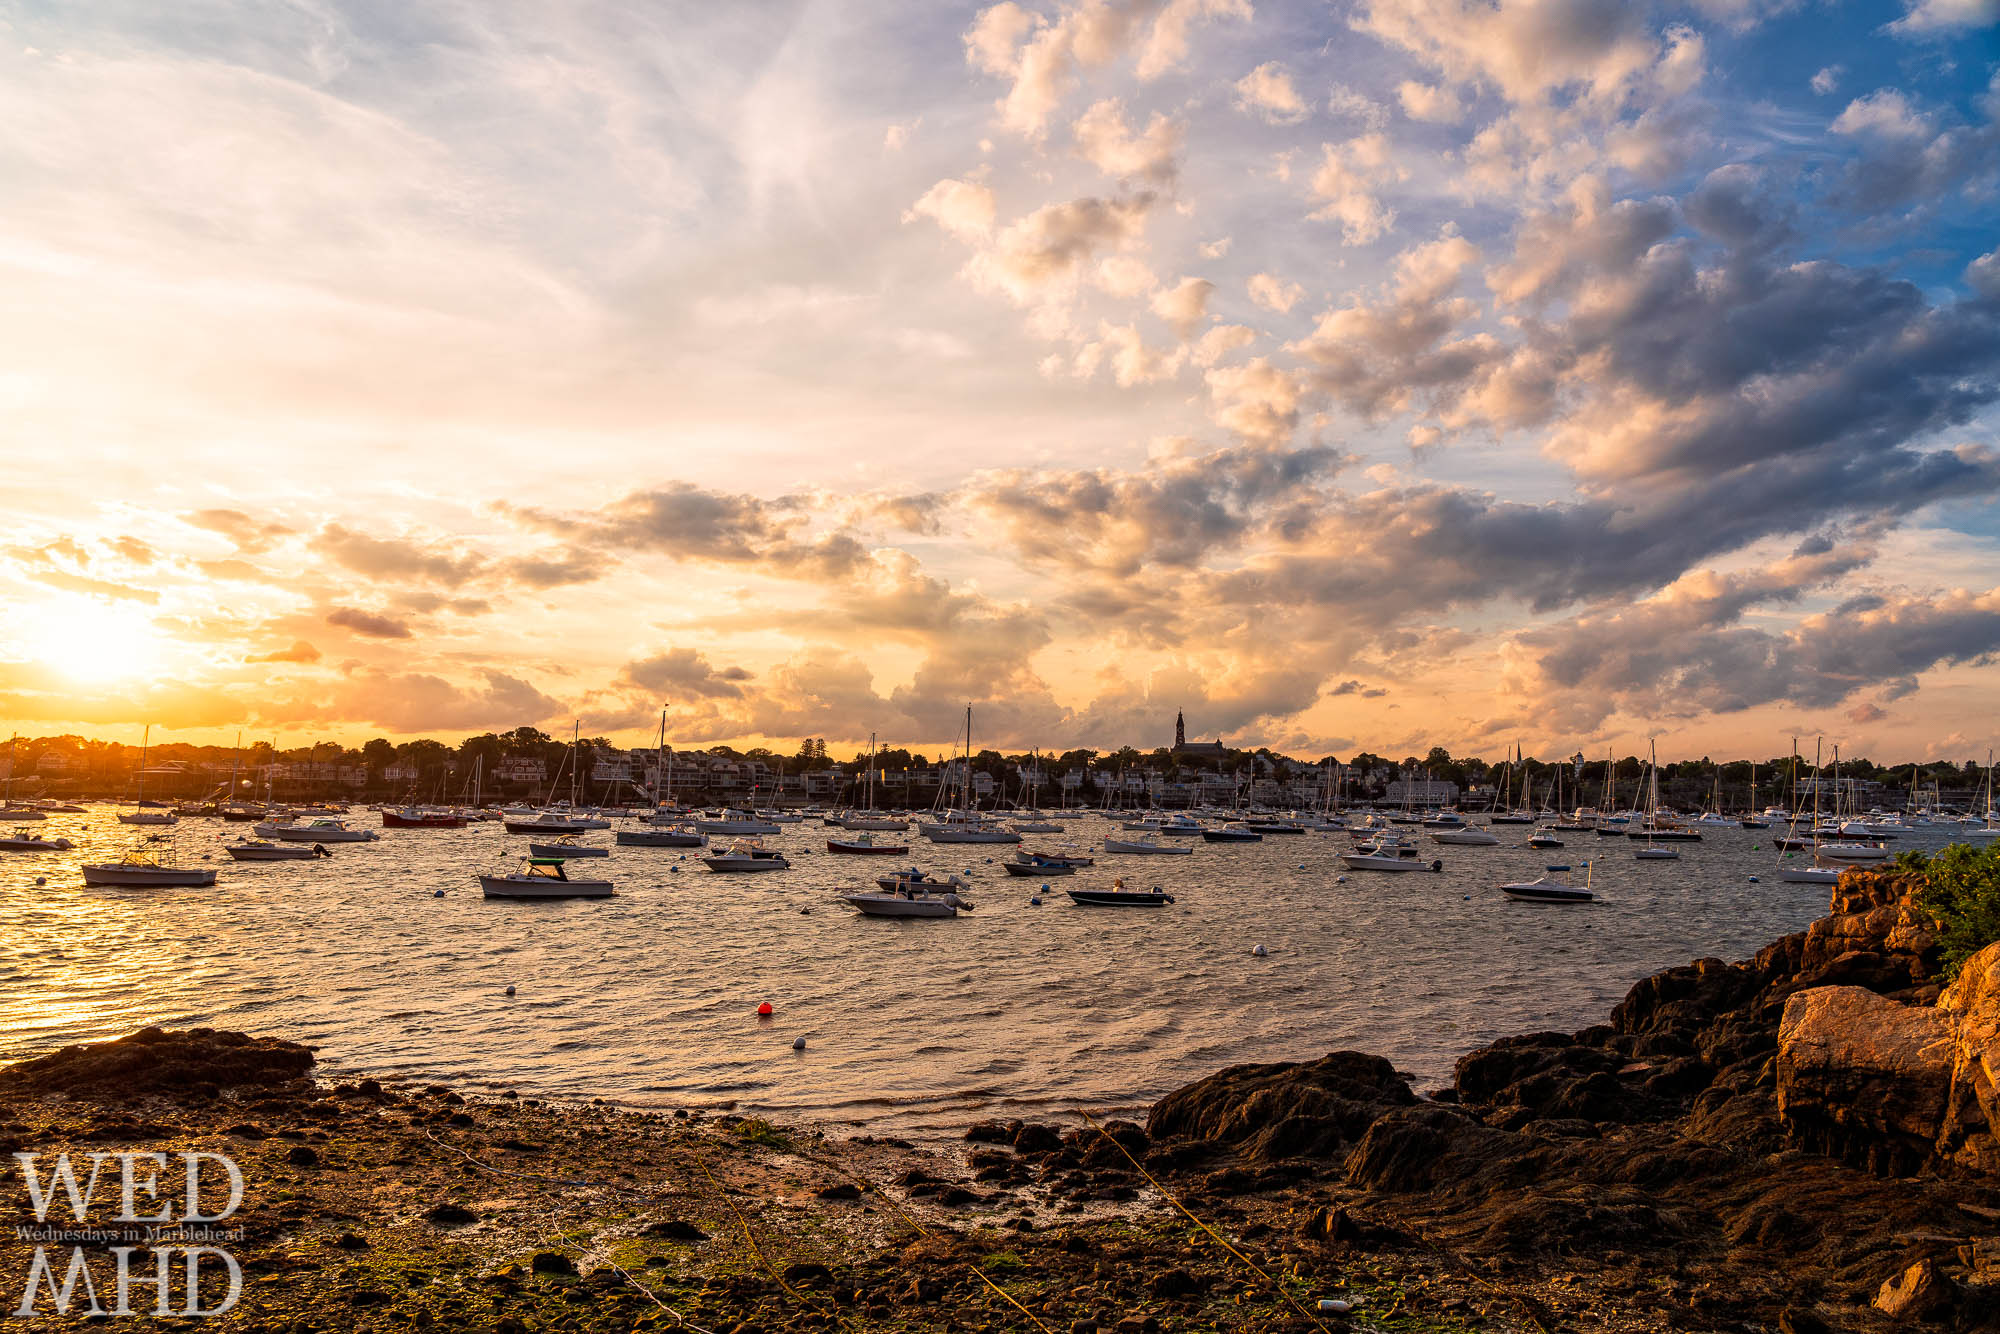 Parker Lane is a small public way on Marblehead Neck offering great sunset views especially at low tide